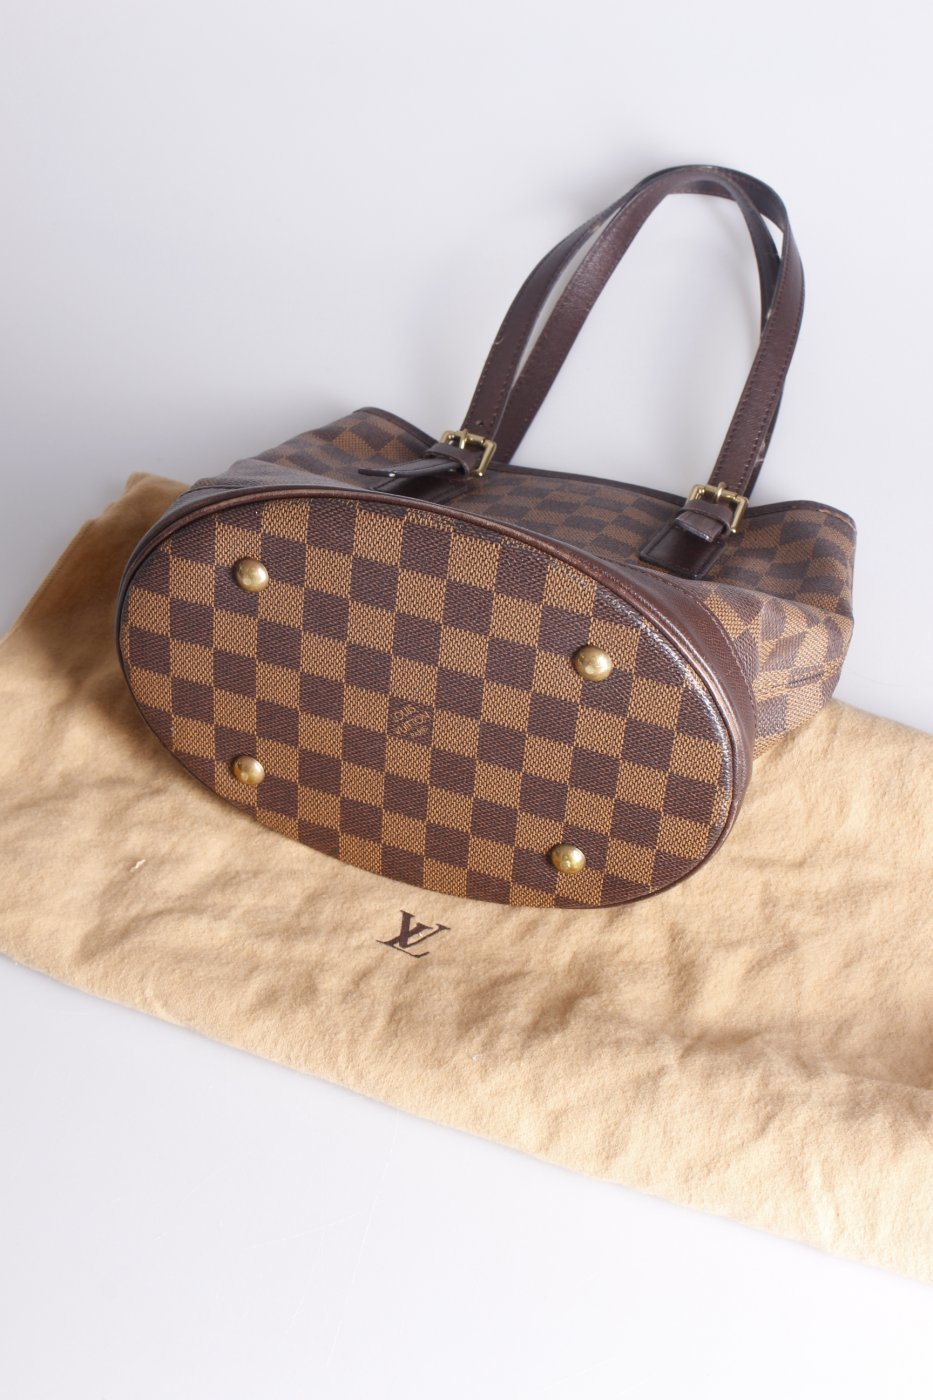 louis vuitton damier bucket henkeltasche damen bronze tasche bag tote ebay. Black Bedroom Furniture Sets. Home Design Ideas